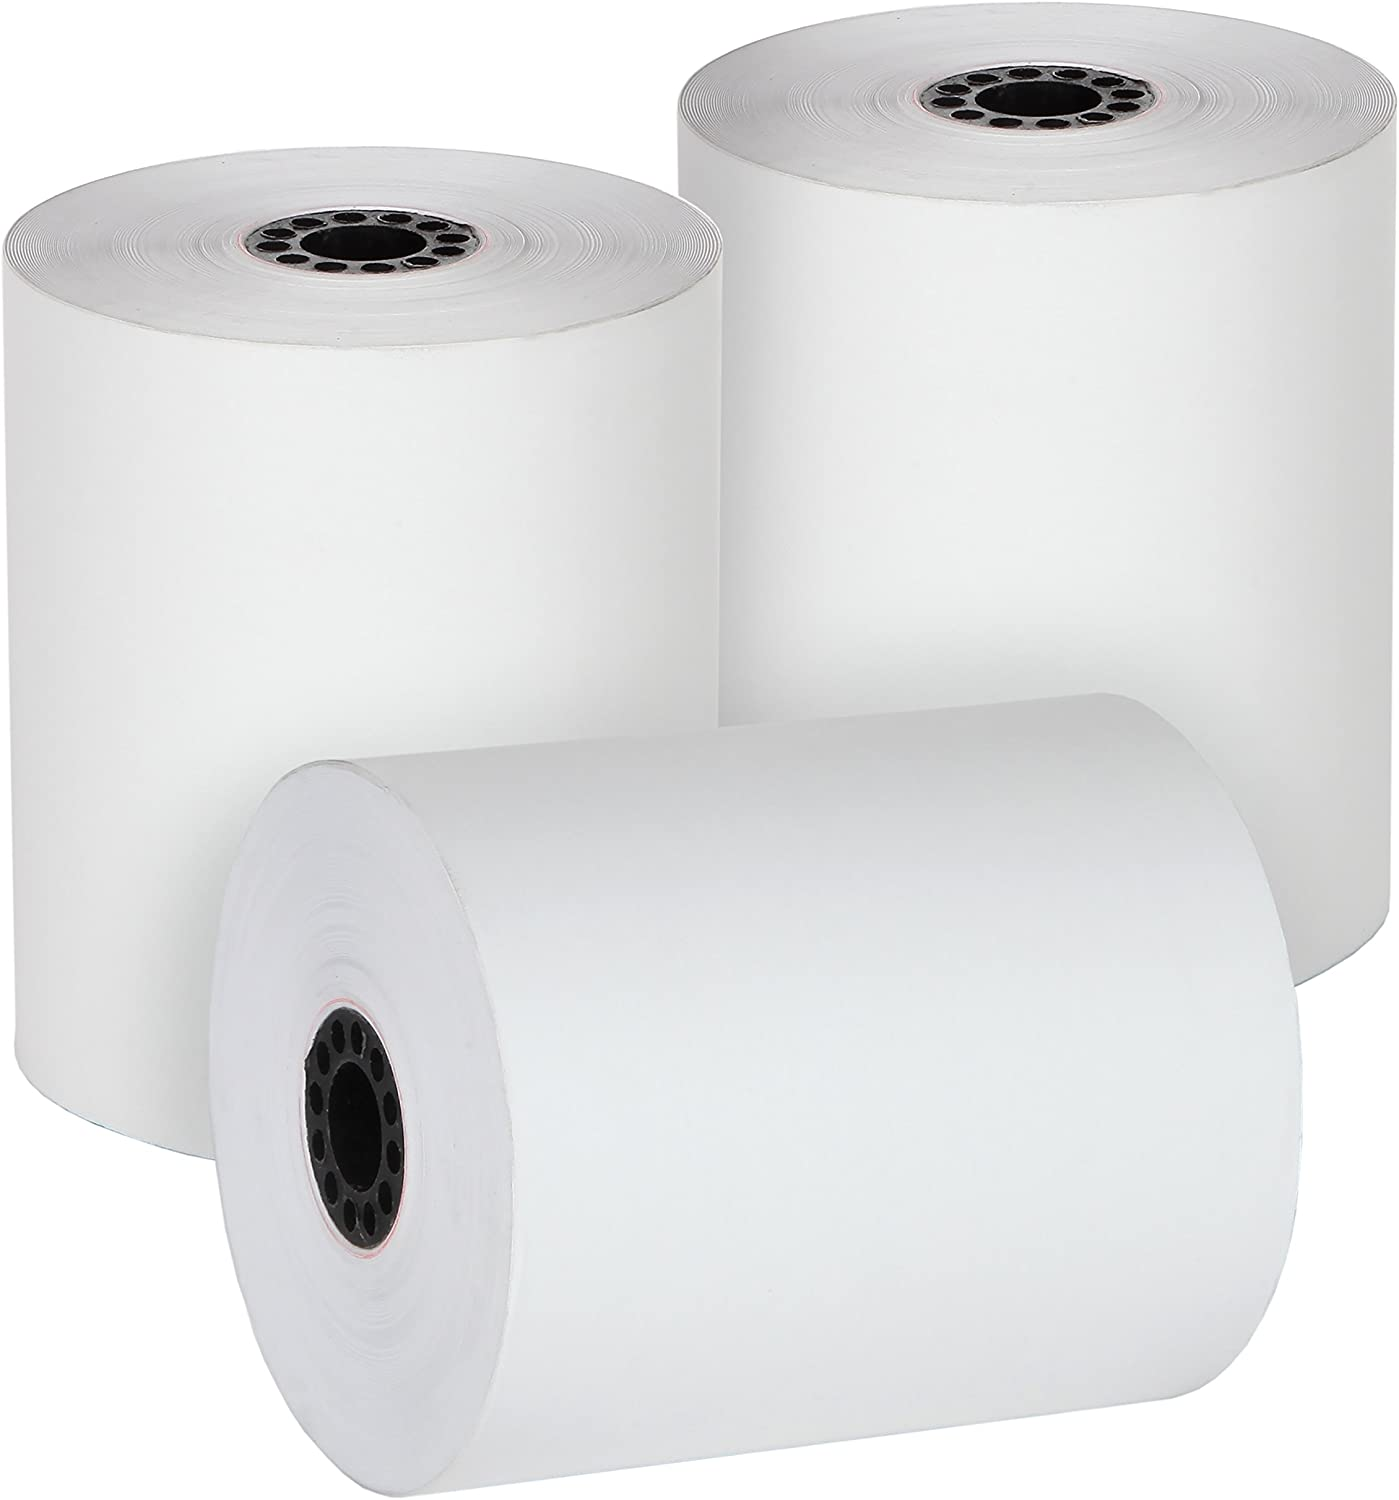 """FHS Retail Thermal Cash Register POS Paper Rolls 3 1/8"""" x 230' MADE IN USA - BPA Free (32 Pack) : Office Products"""